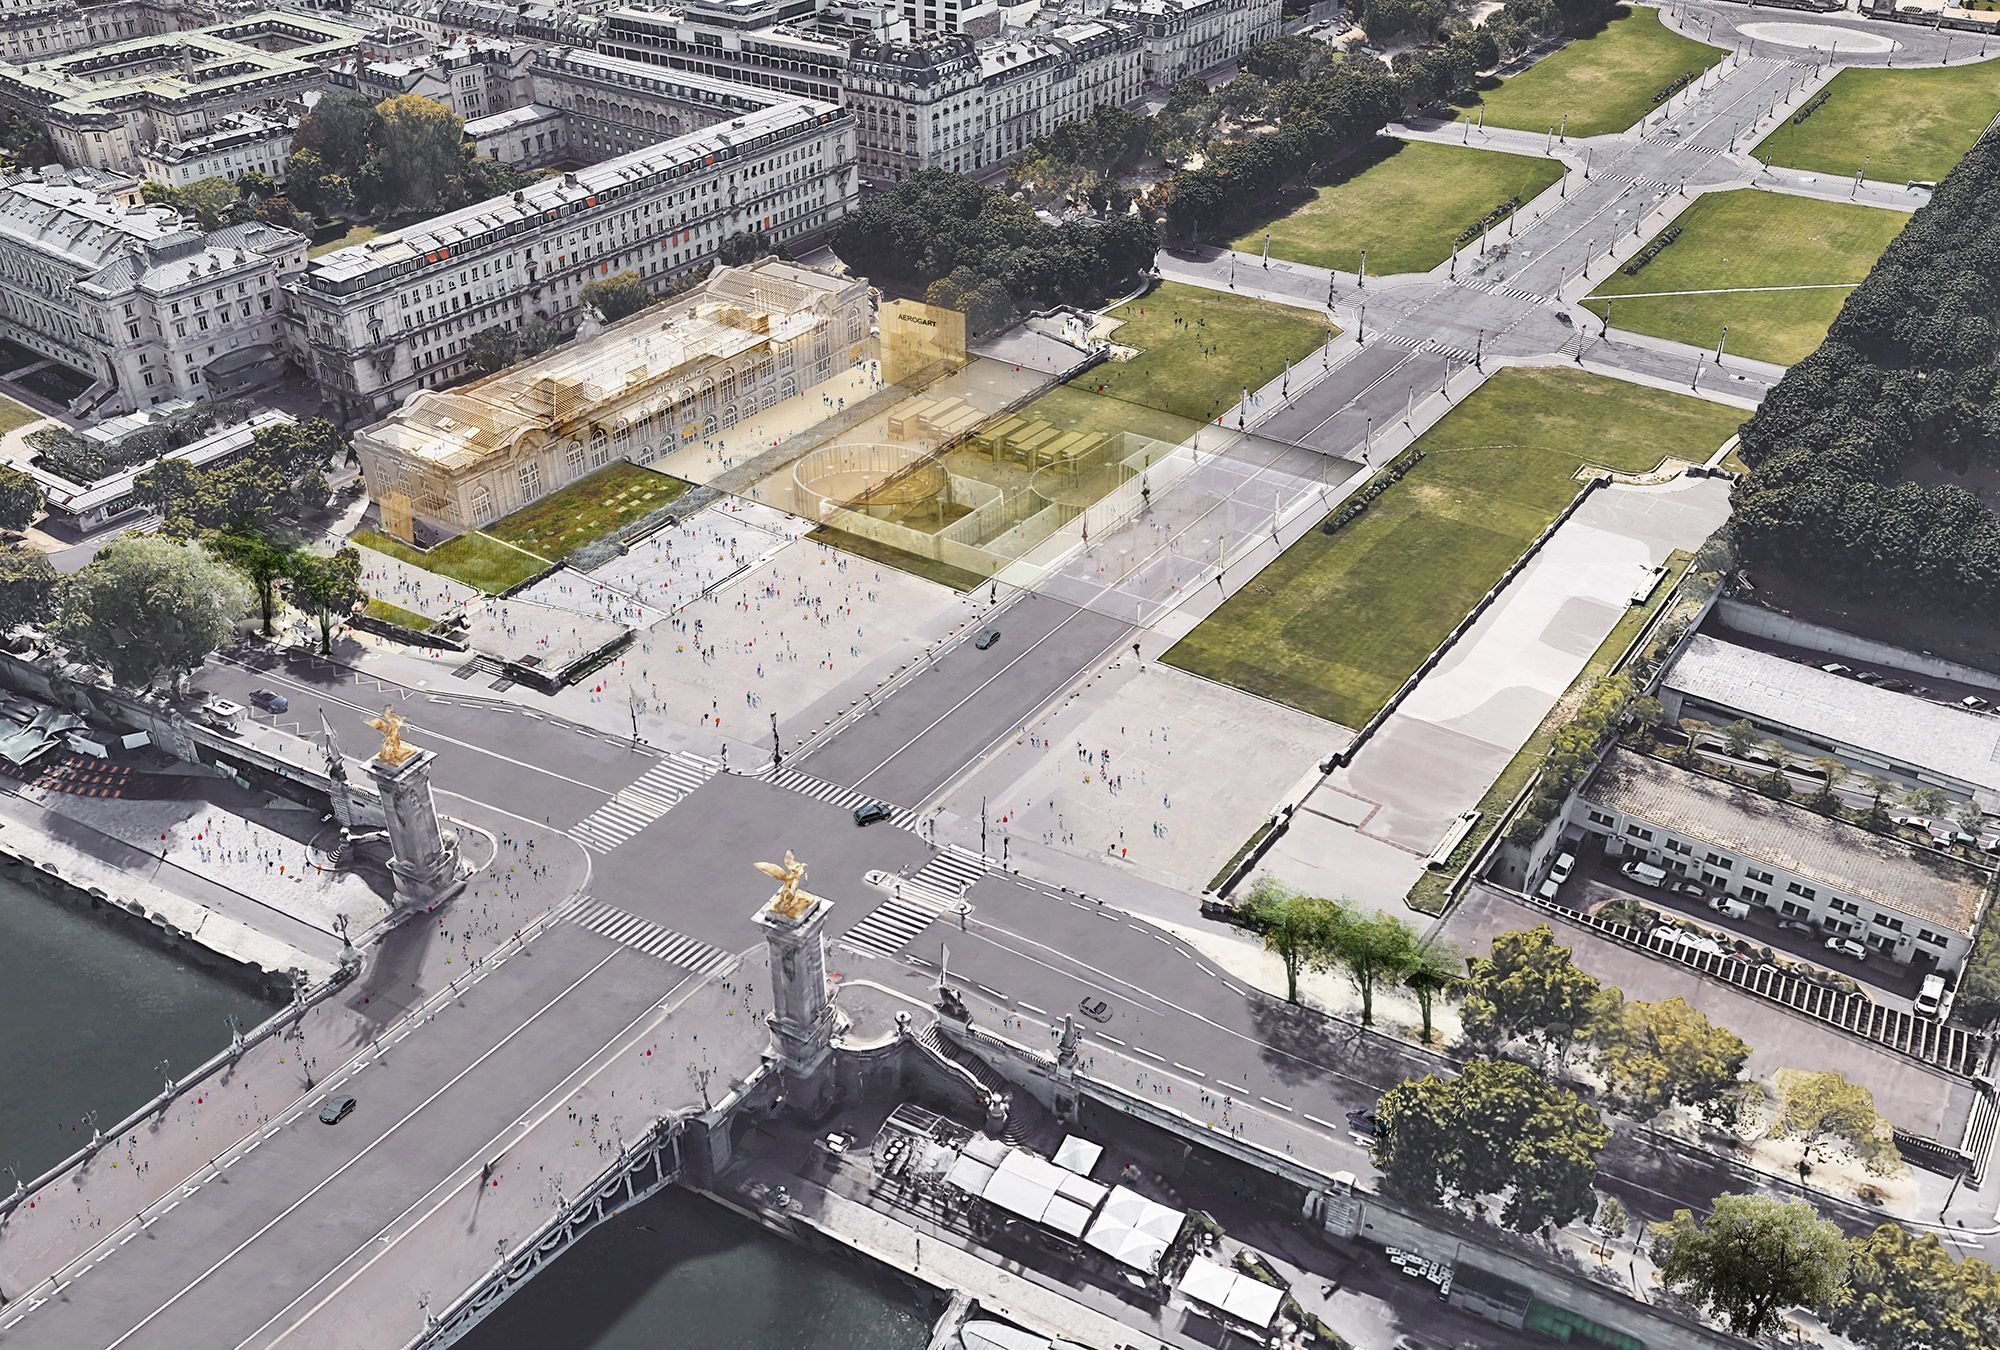 https://i.ibb.co/Pc6x4fY/Le-projet-Aerog-Art-de-Dominique-Perrault-aux-Invalides-1.jpg